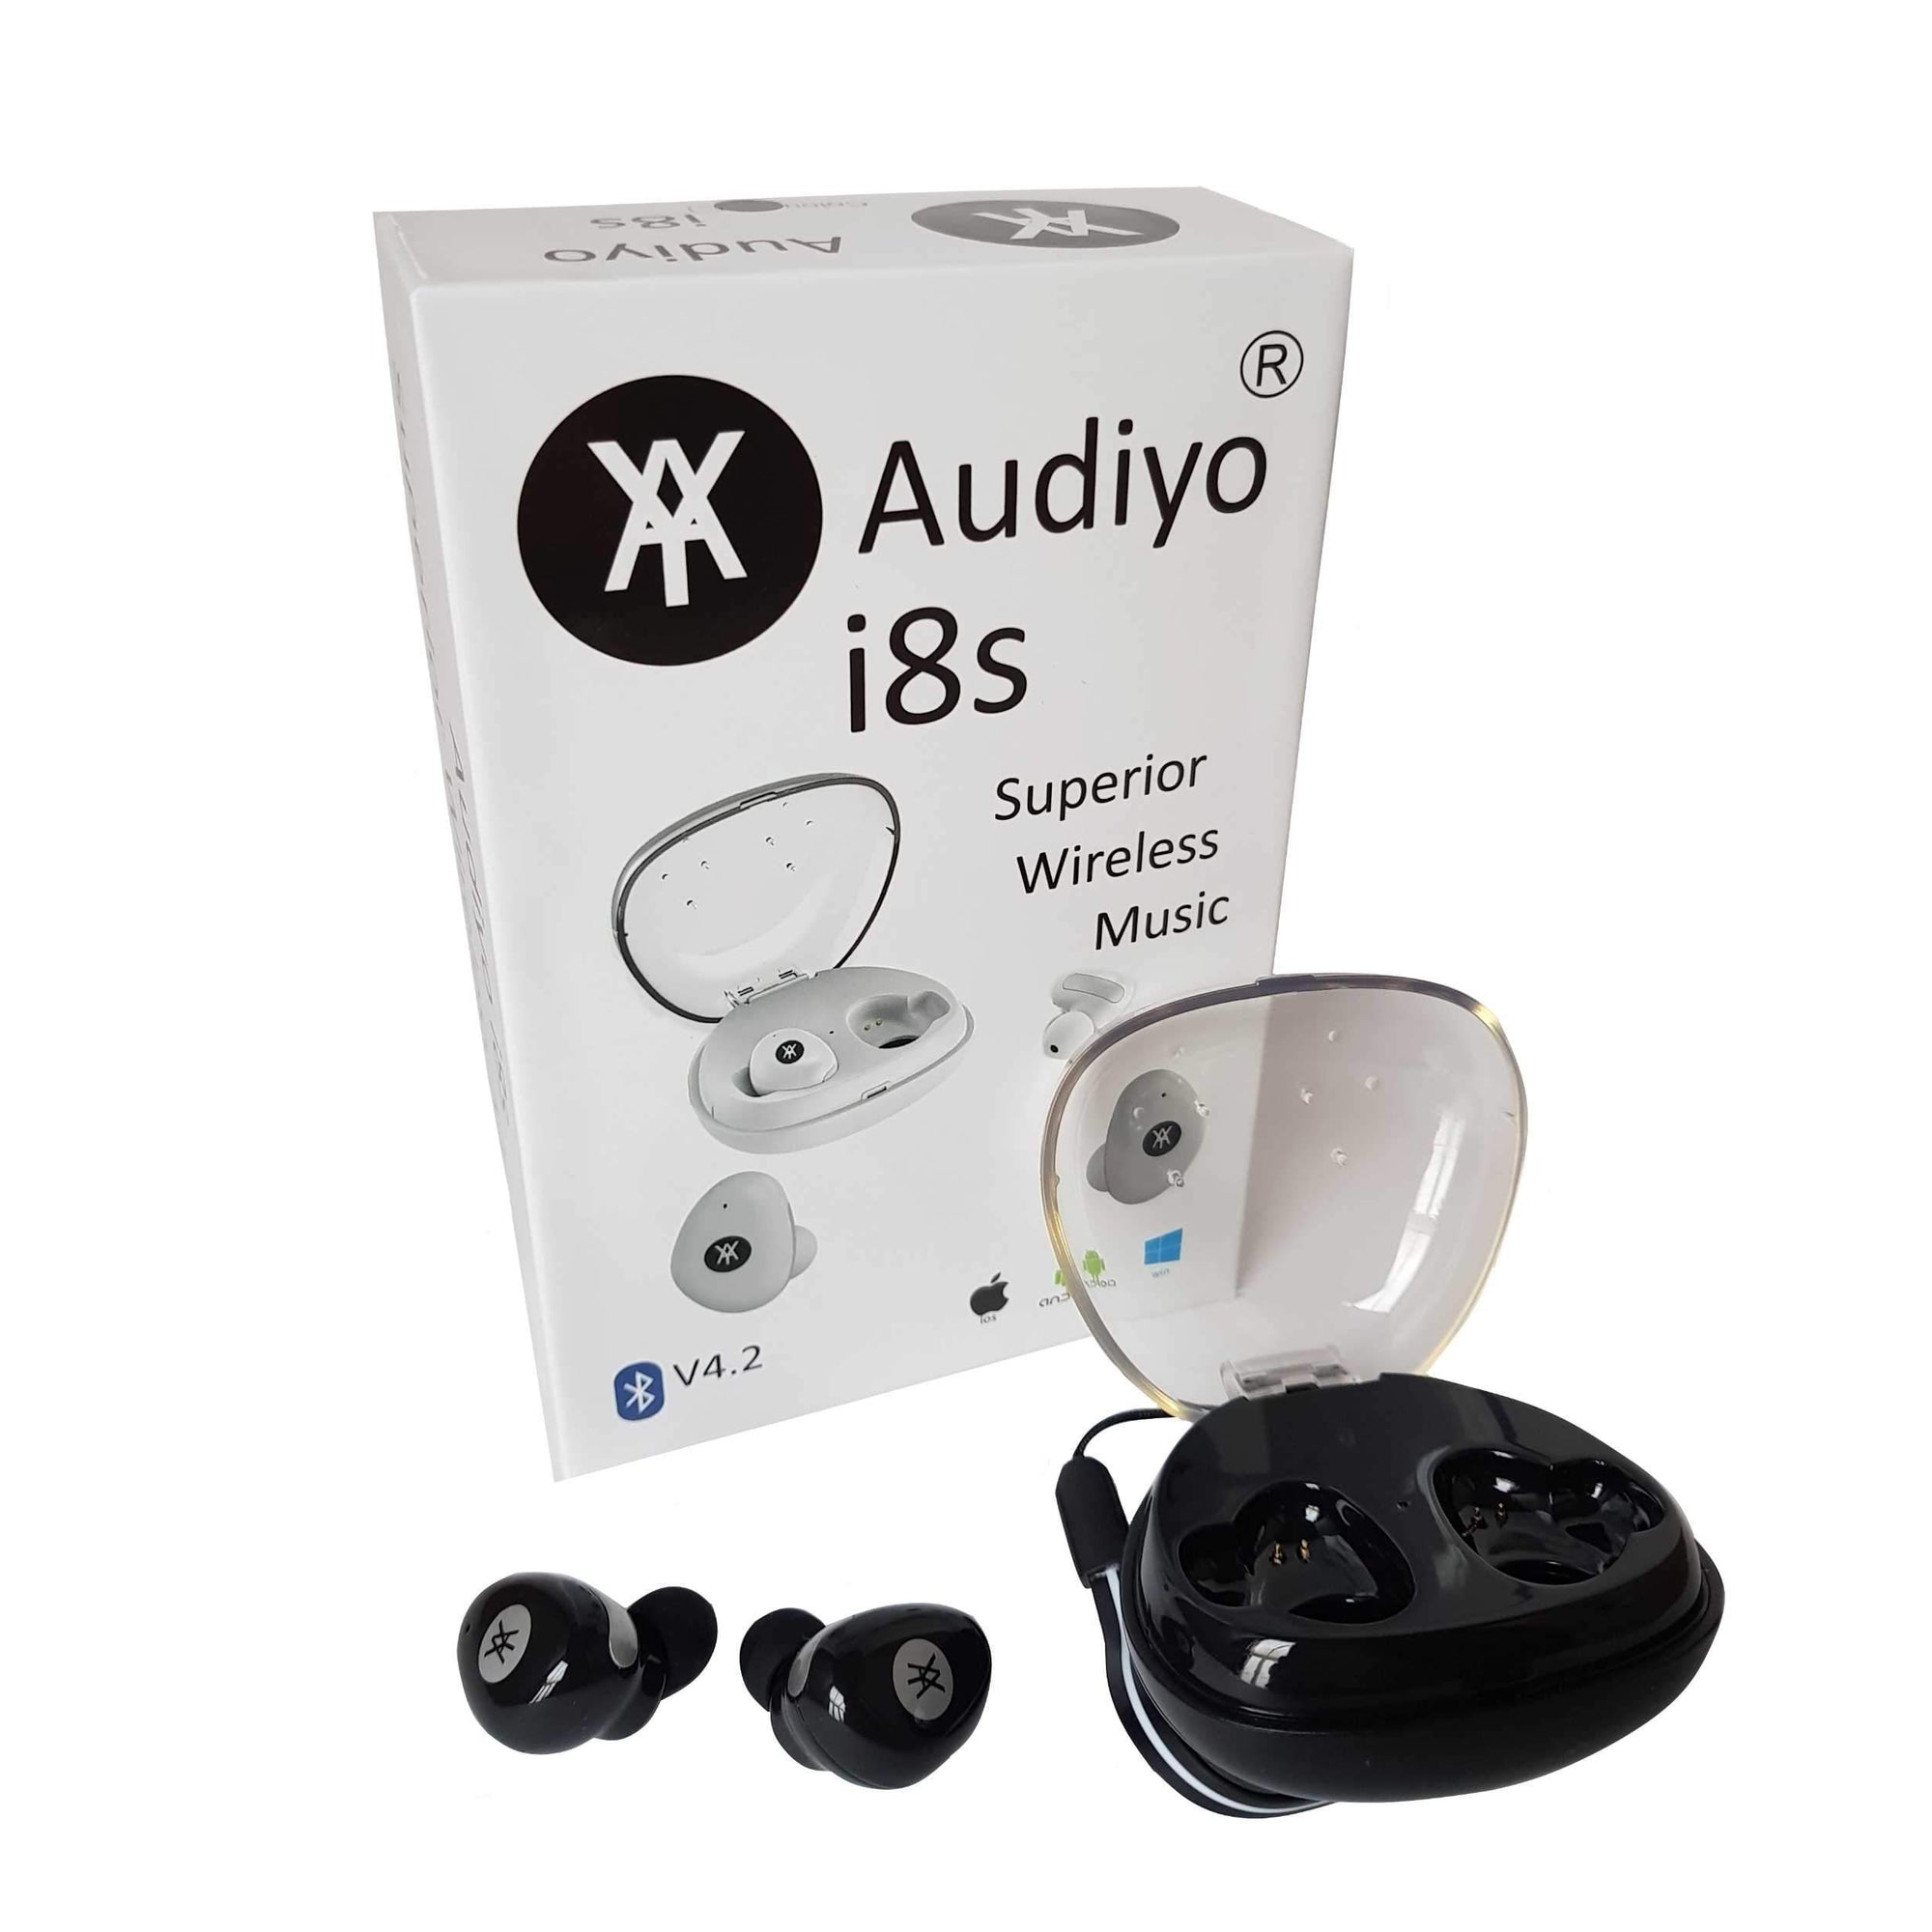 Audiyo i8s Superior Wireless Headphones